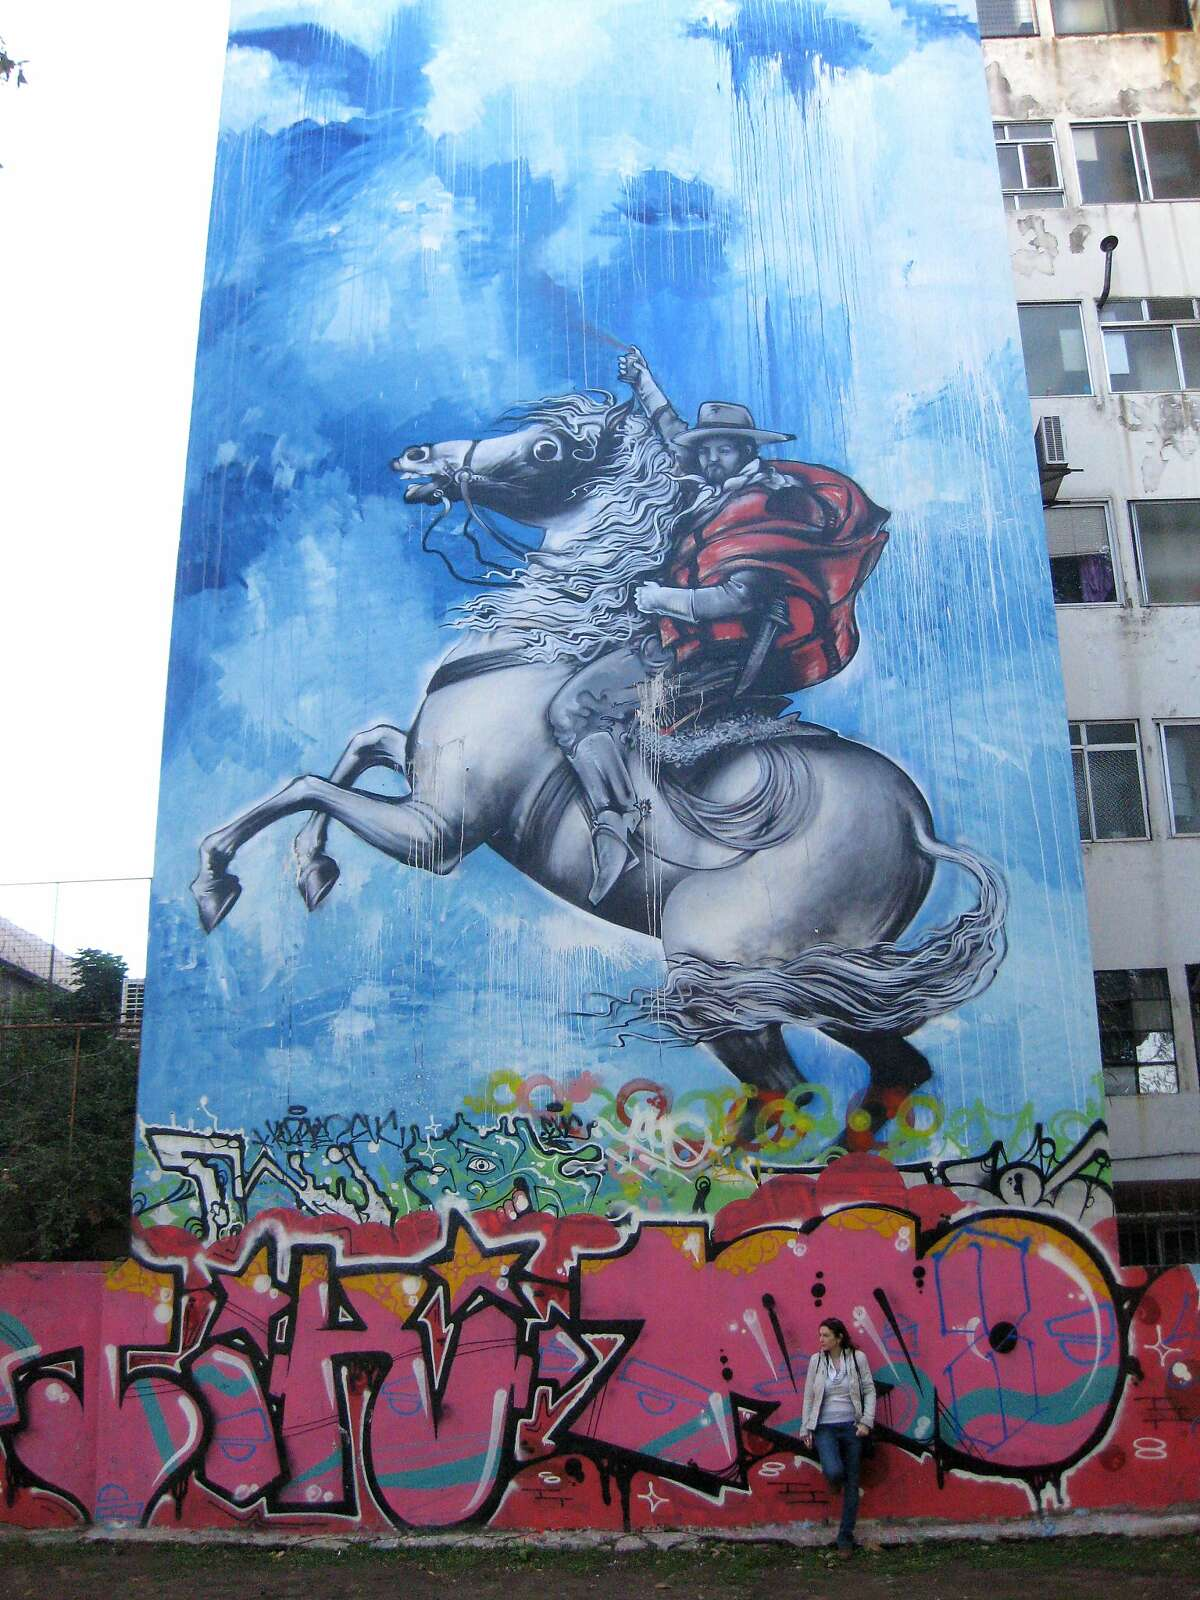 The burgeoning street art scene in the Palermo district of Buenos Aires has spawned related walking tours for visitors.